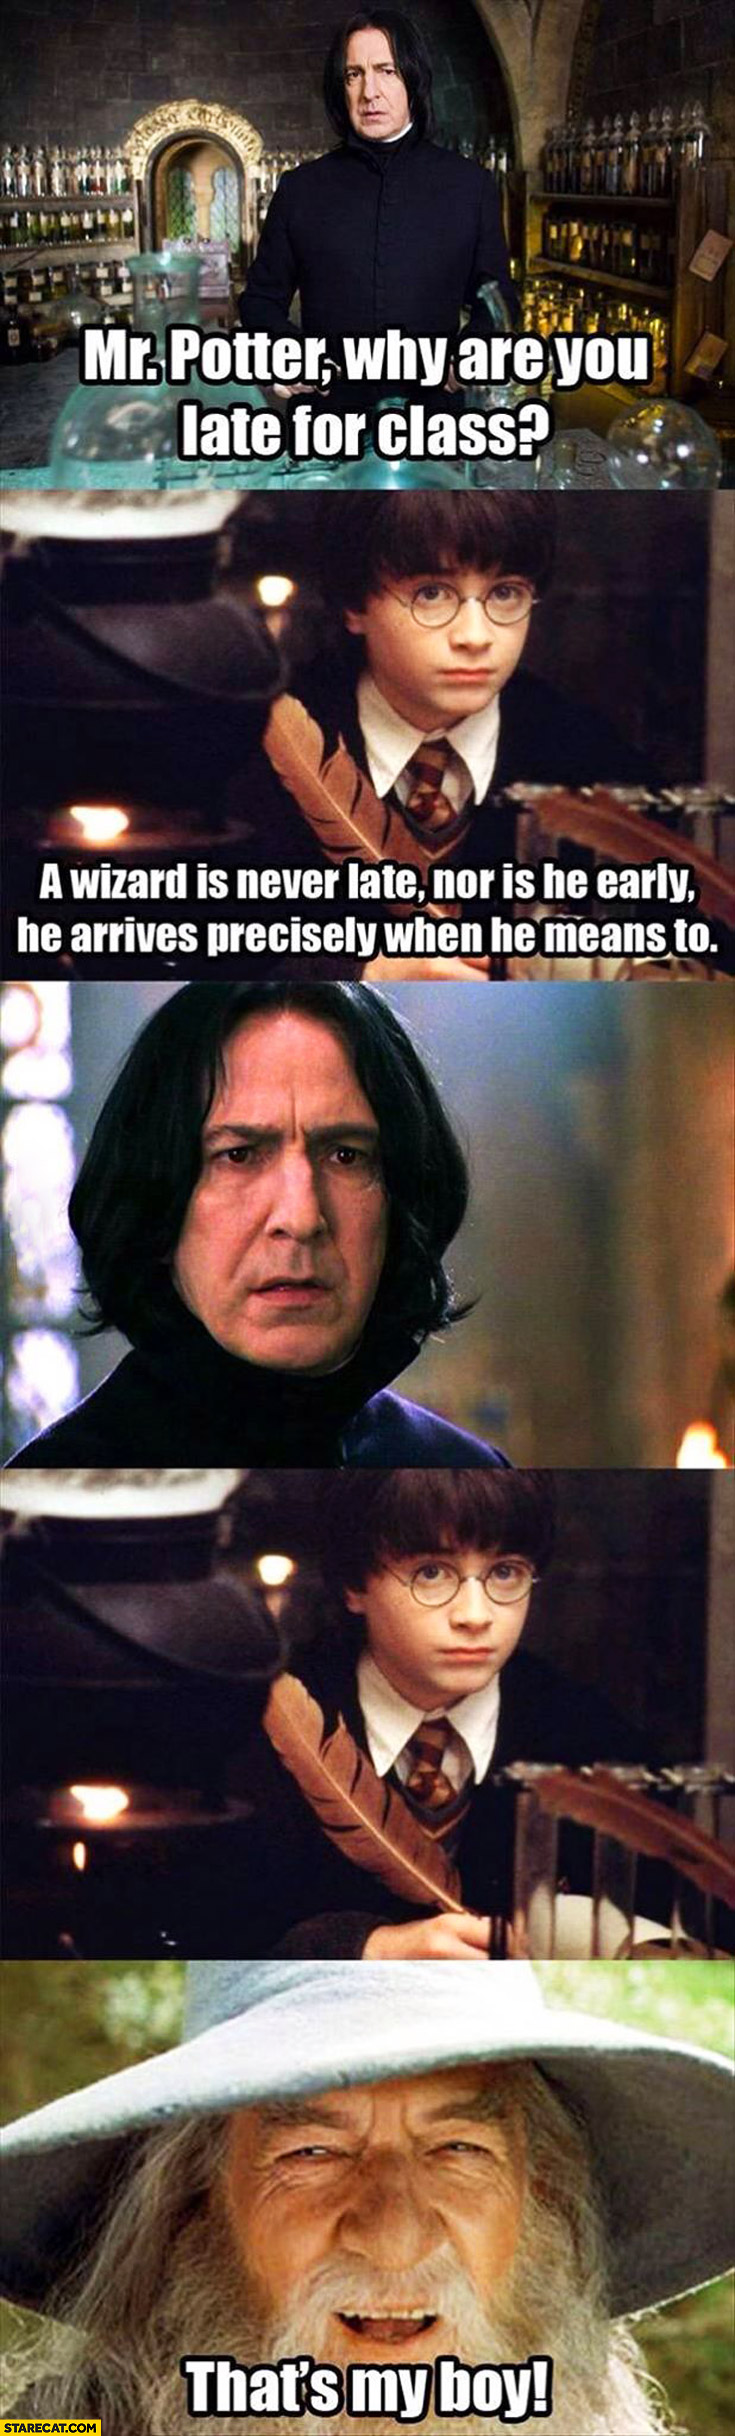 Mr Potter why are you late? Wizard is never late nor is he early he arrives precisely when he means to. That's my boy